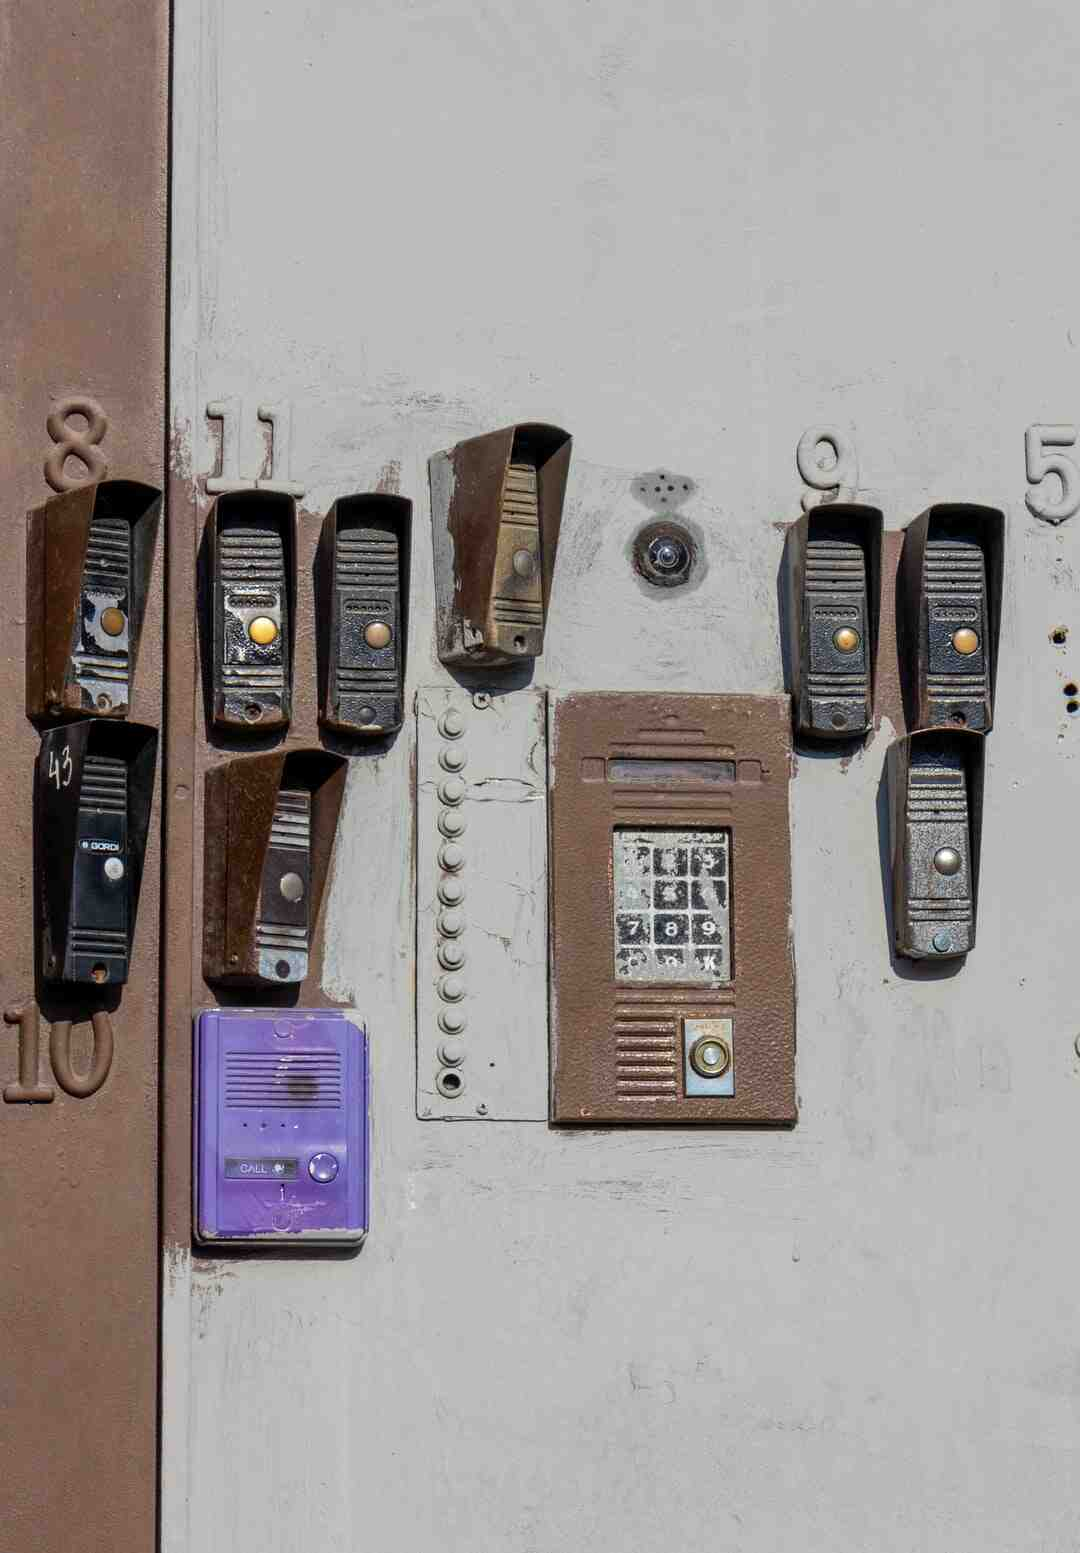 Comment ouvrir interphone bticino